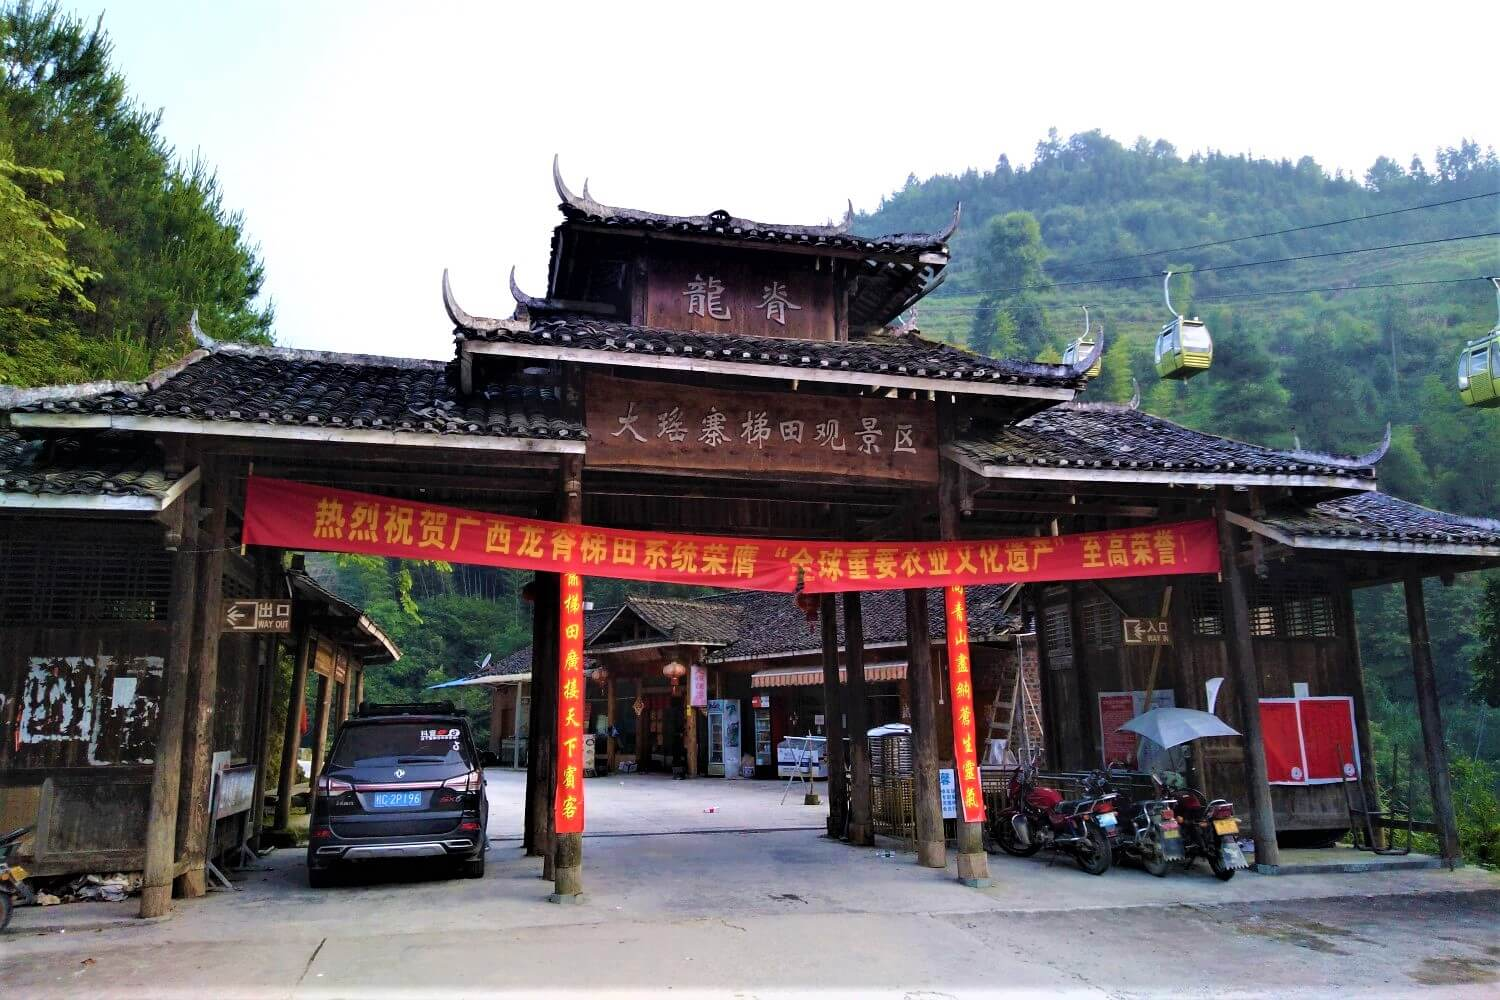 The gate to the village of Dazhai, China